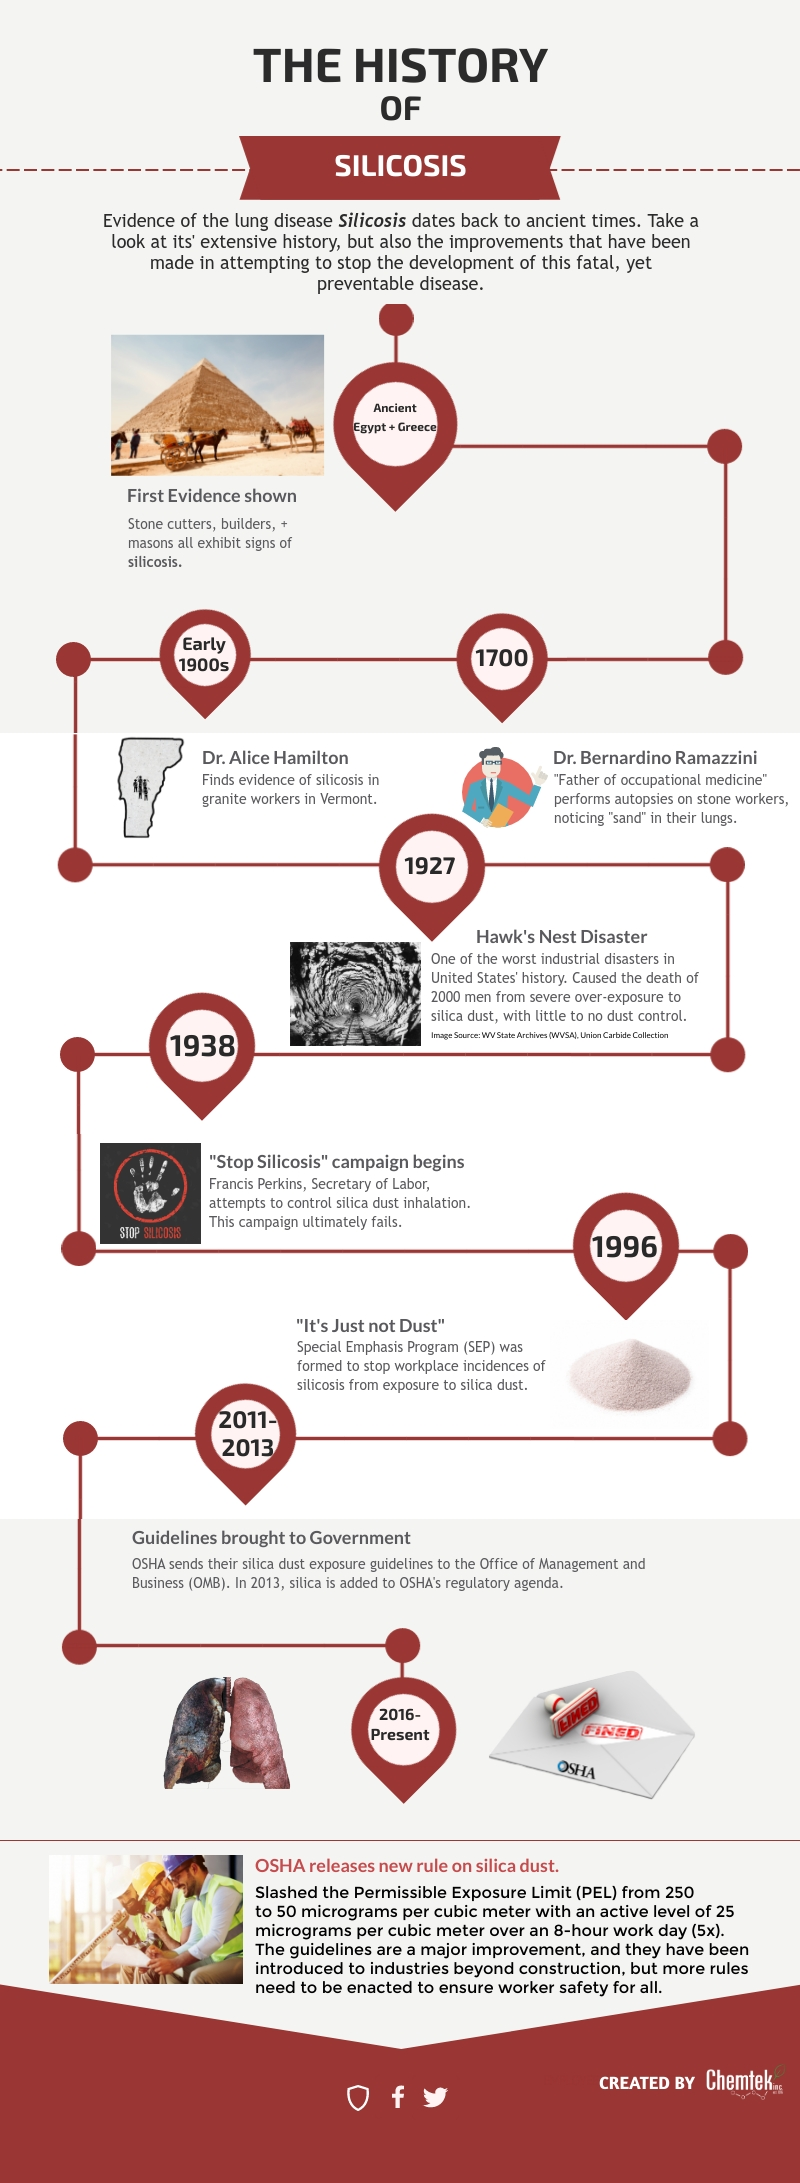 Timeline of Silicosis